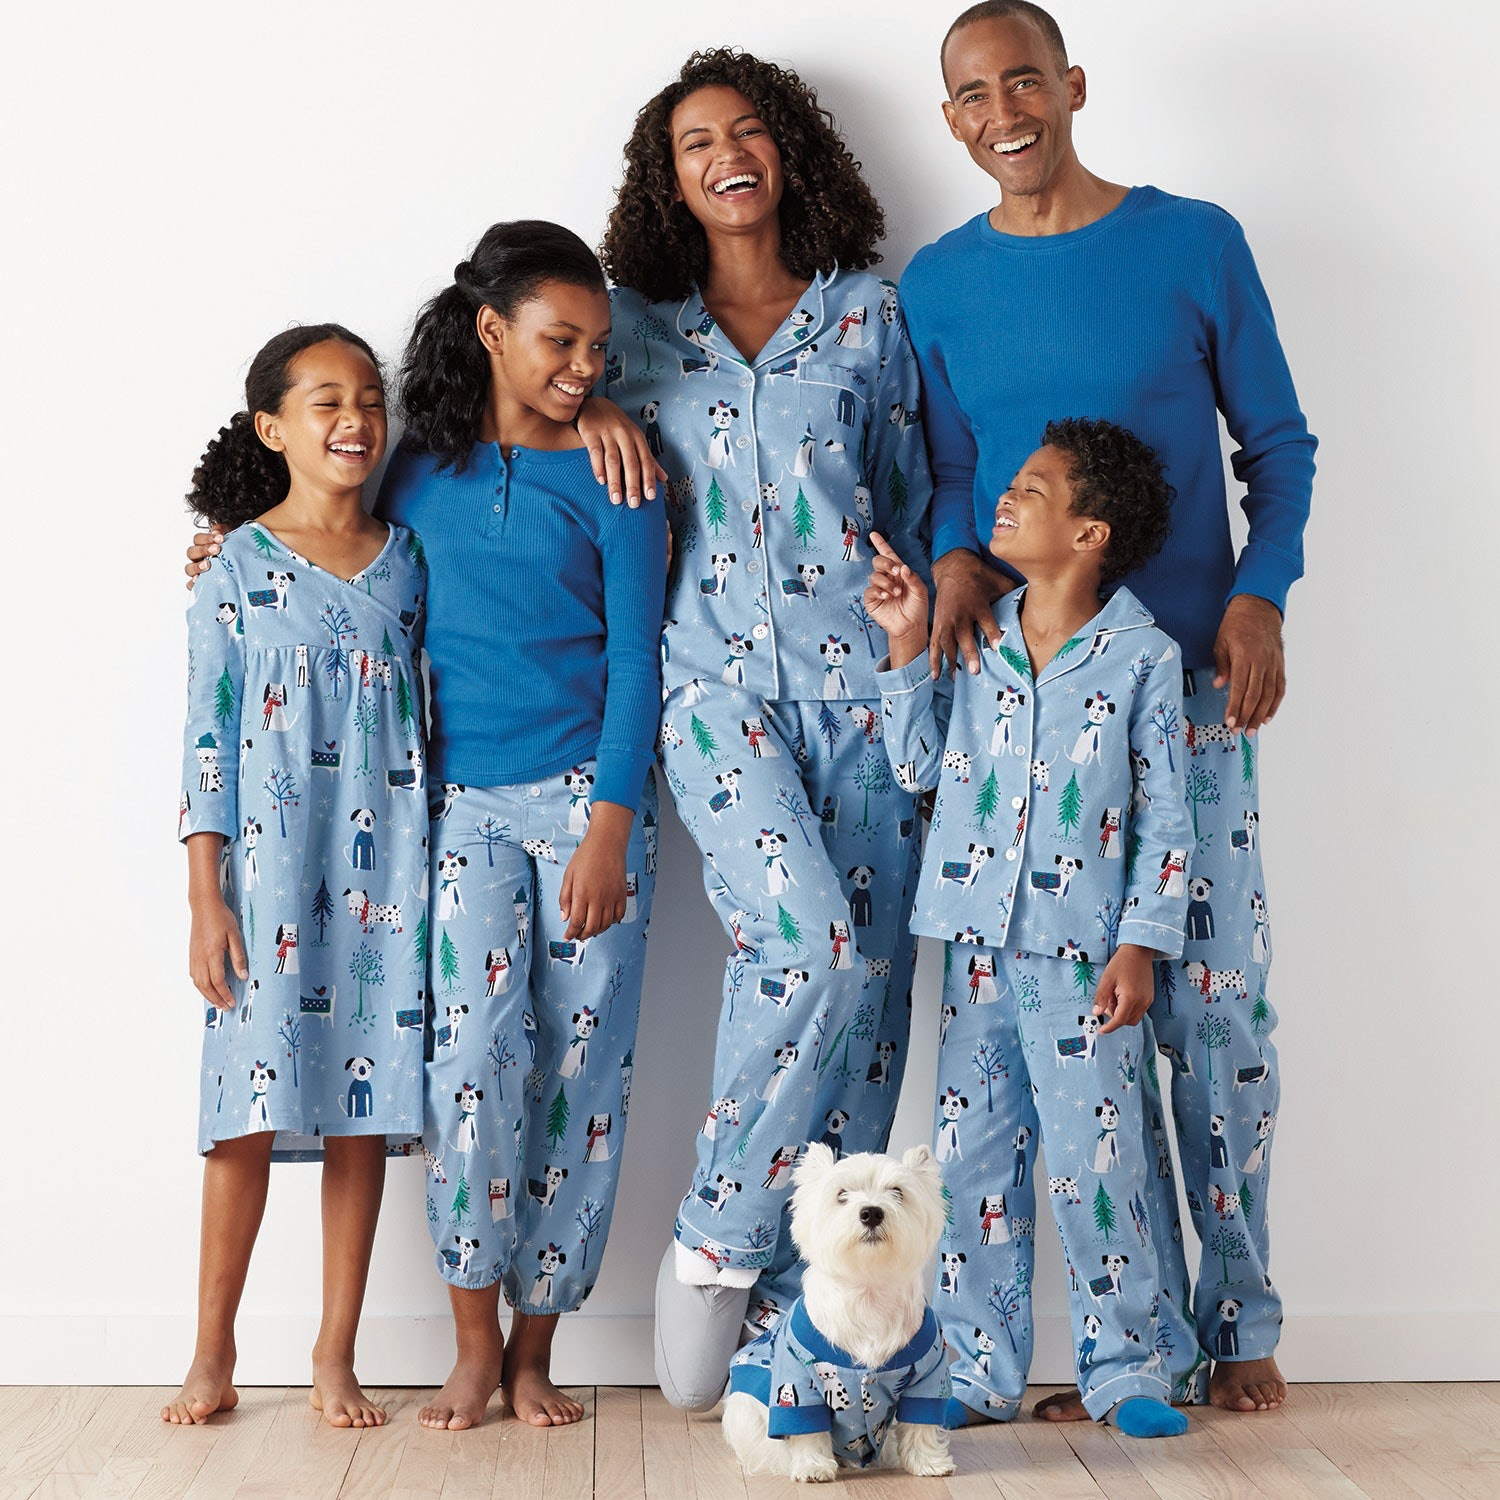 261926afcf 5 Dog   Owner Pajamas Meant For Your Lazy Sundays Chilling With The Fur Bae